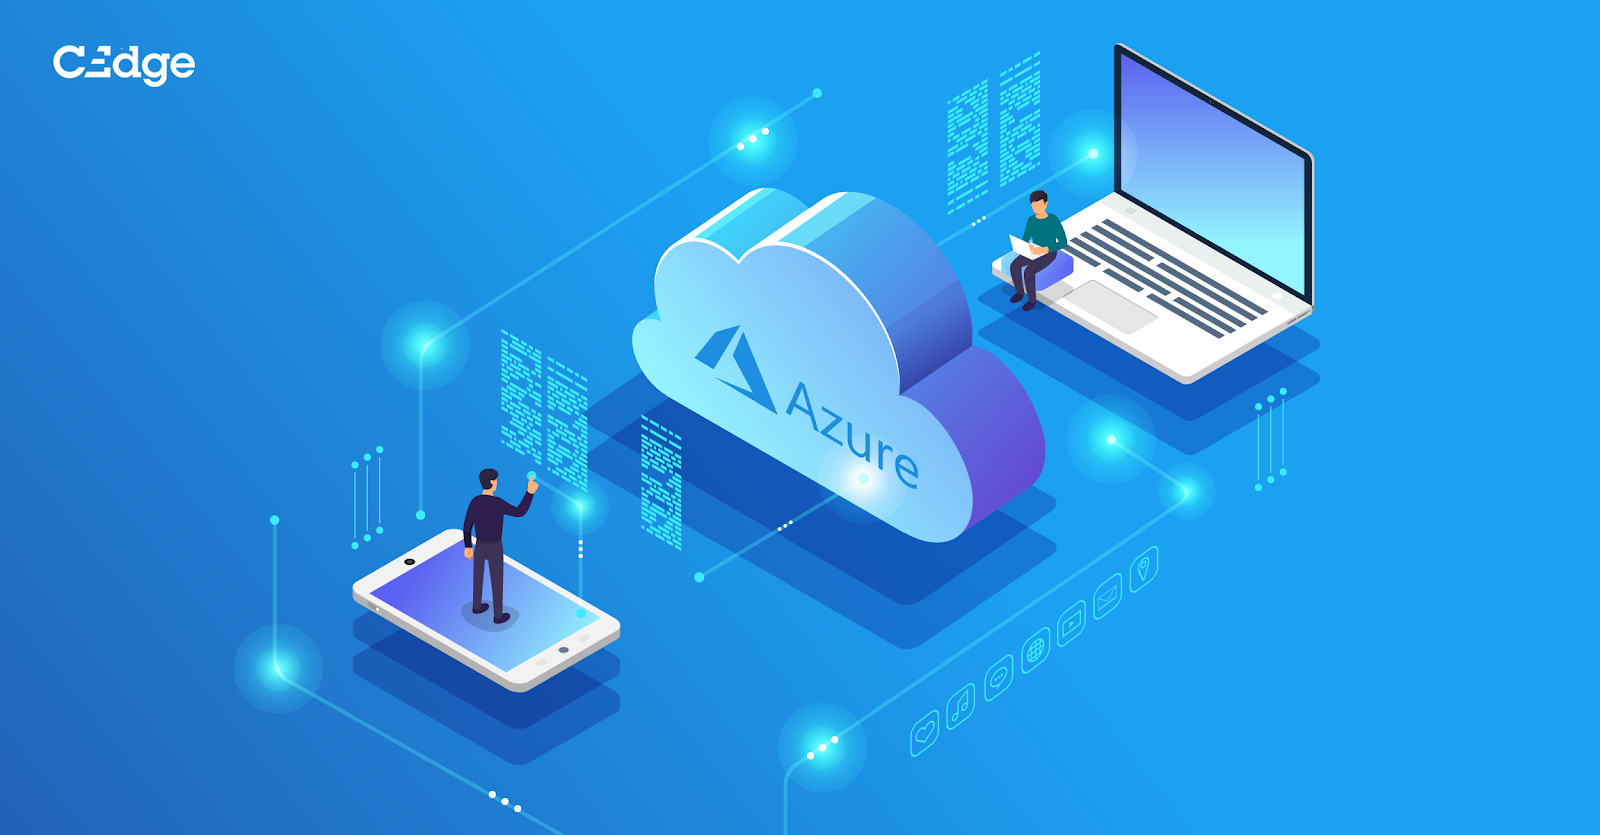 Challenges to Implement Microsoft Azure and Benefits to Public Sector